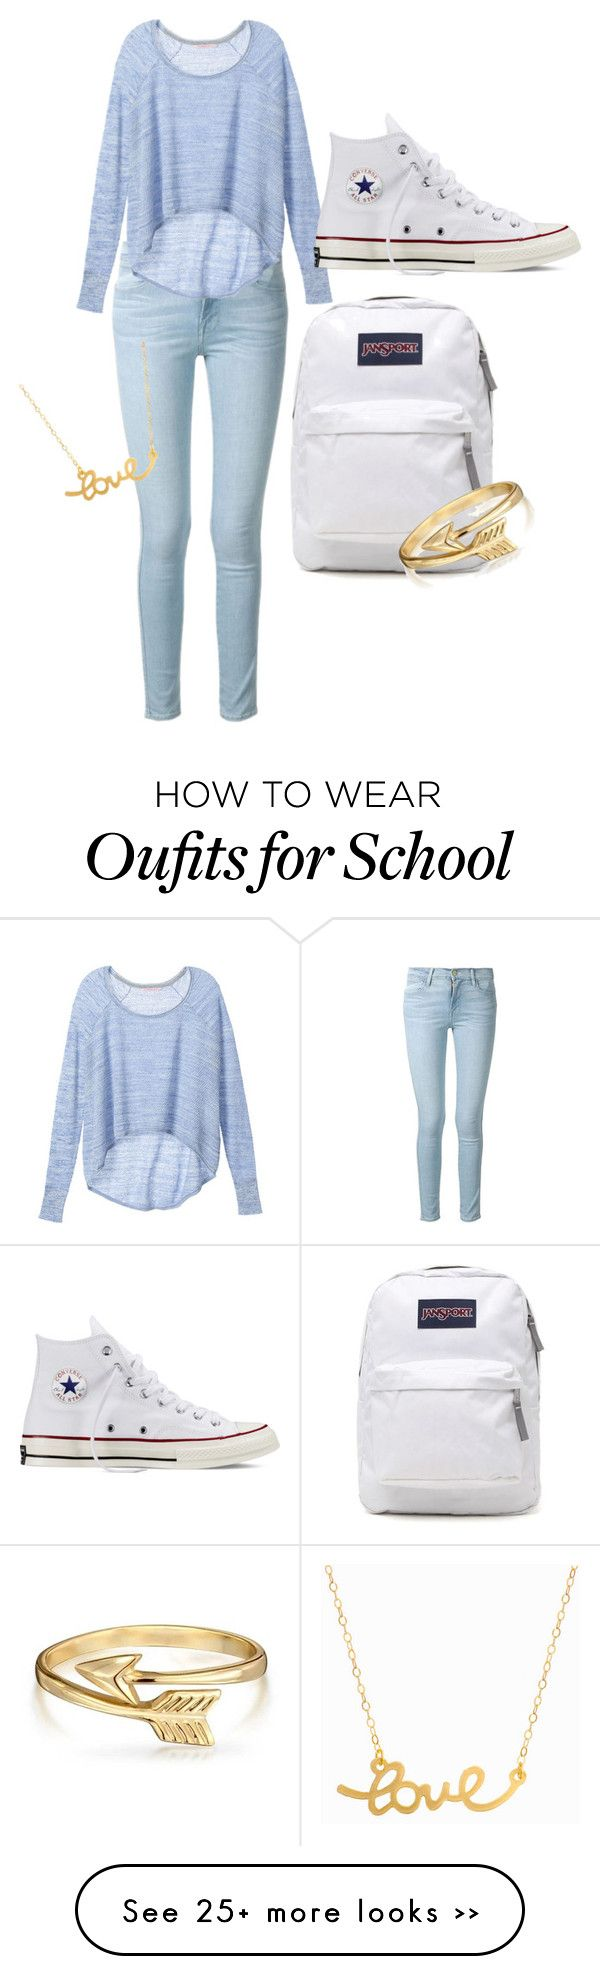 the gallery for gt light blue jeans outfit for school